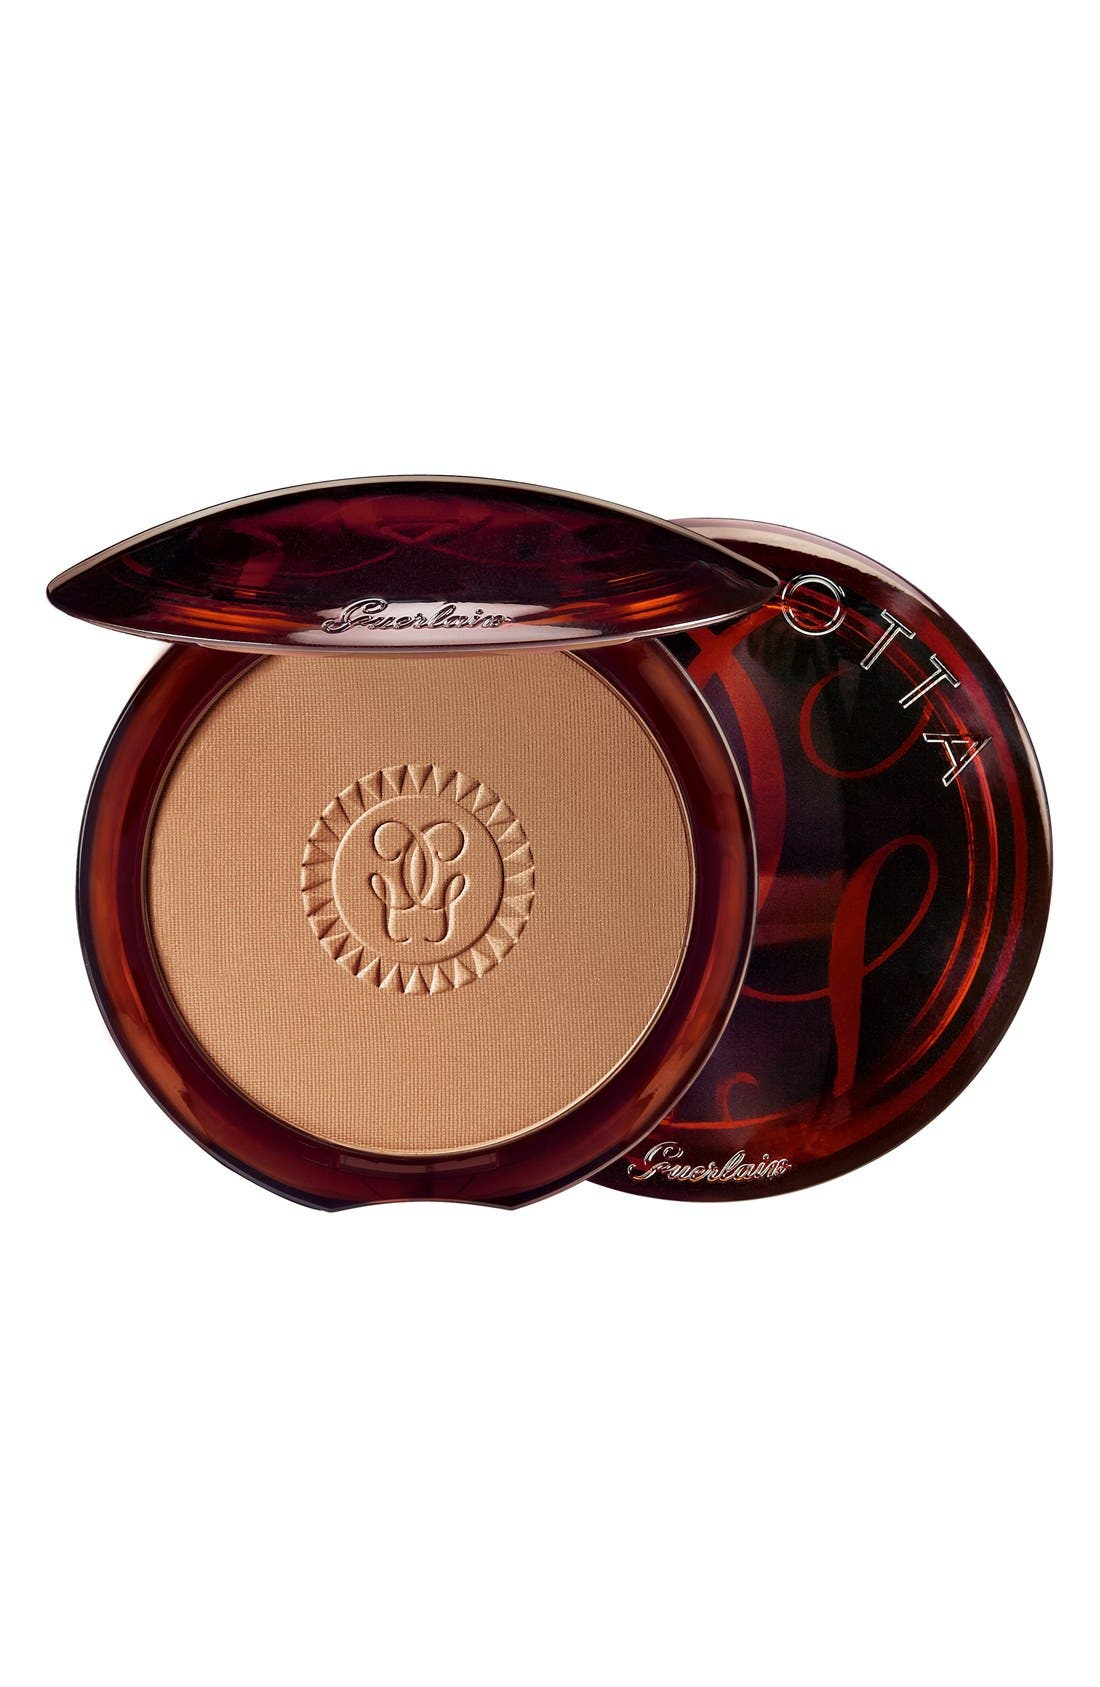 Guerlain Terracotta Original Bronzing Powder